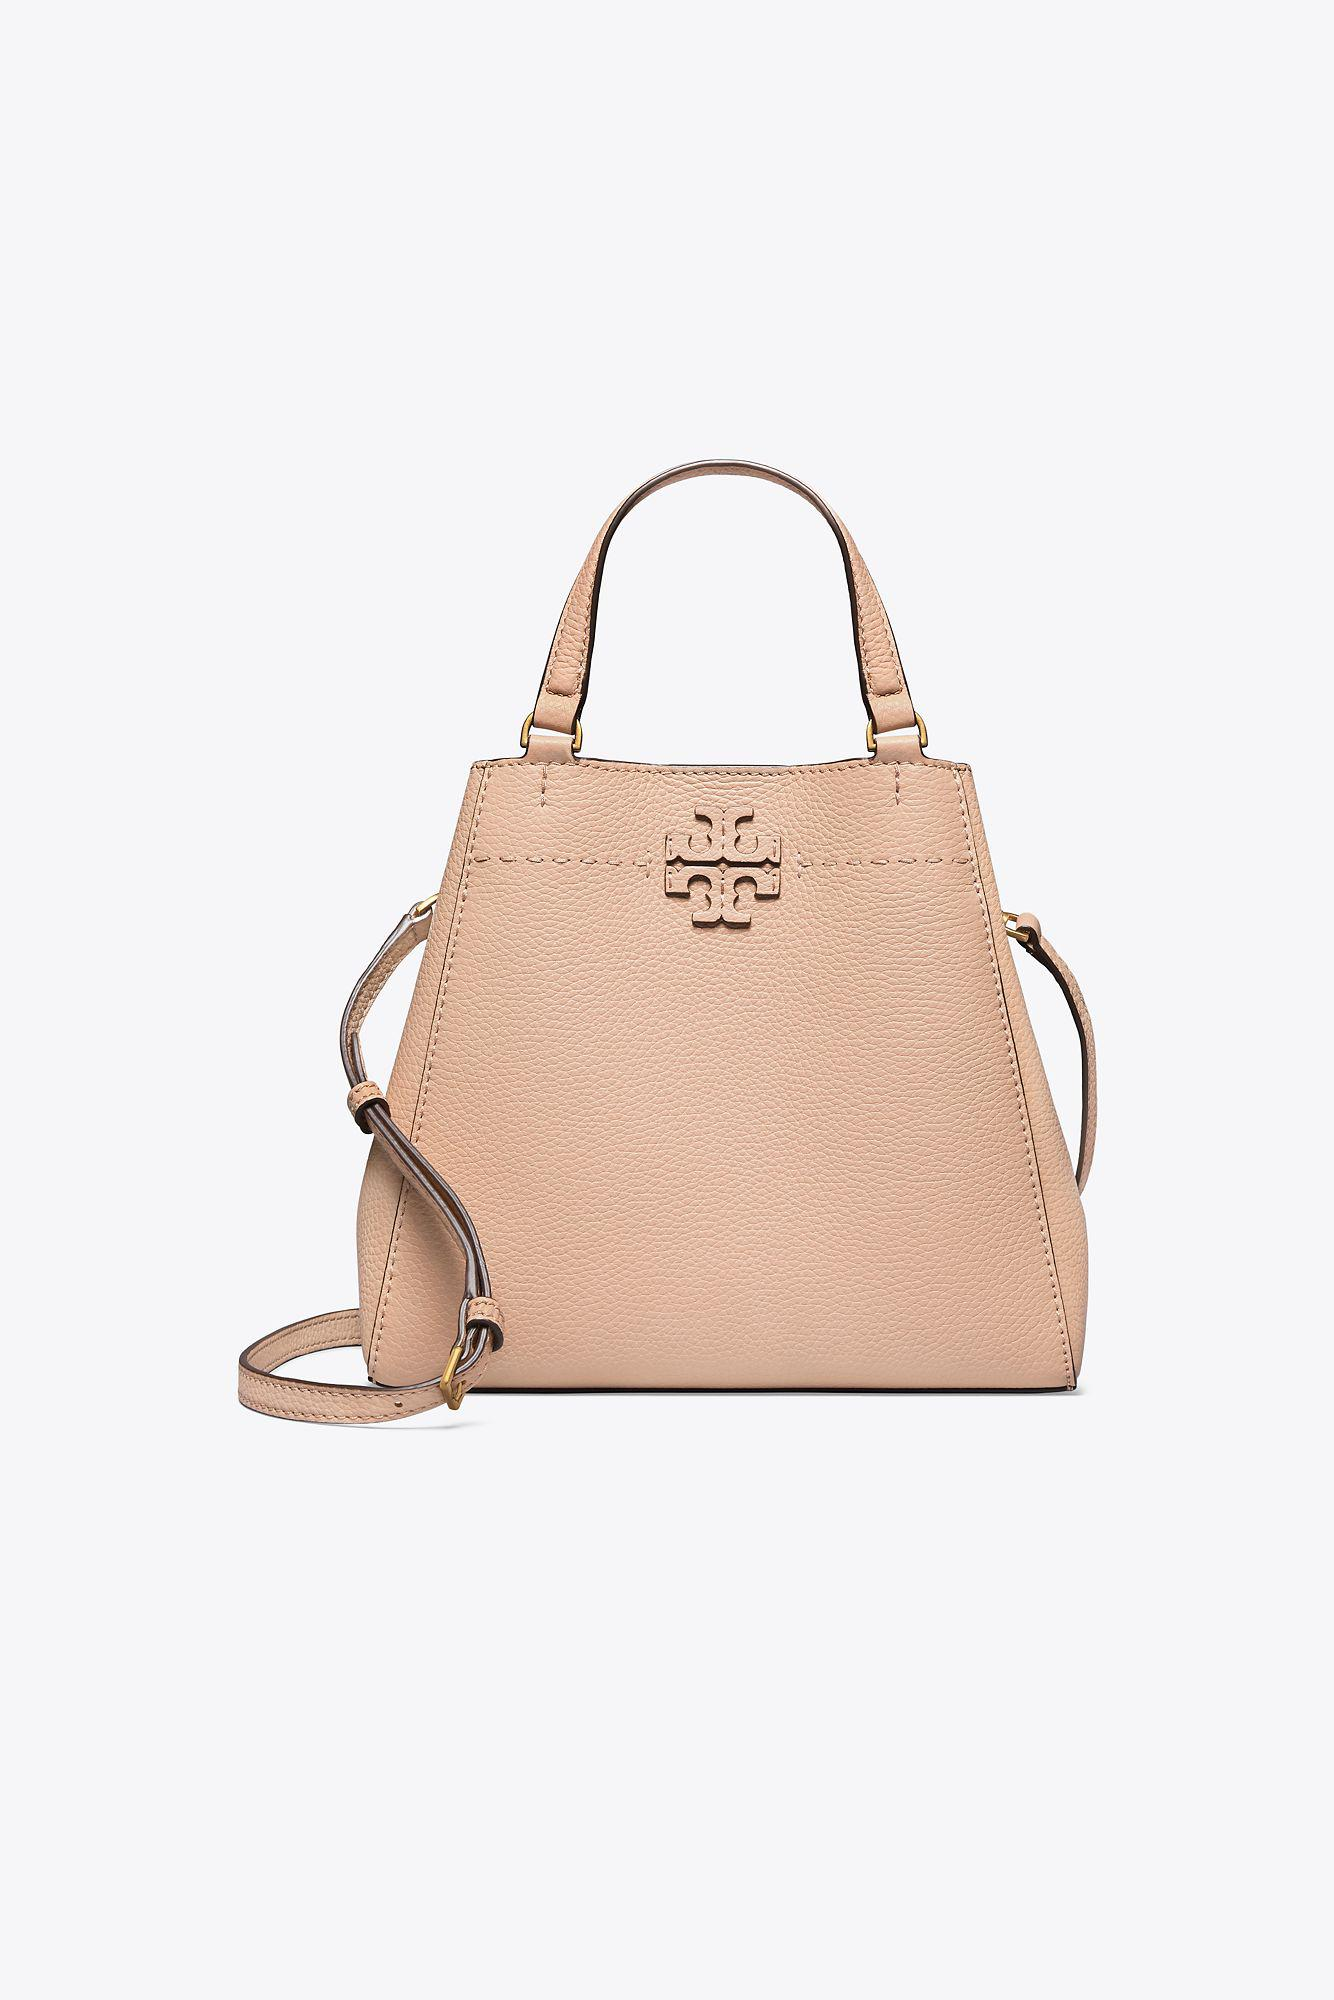 f45c5990ad45 Tory Burch Mcgraw Small Carryall in Natural - Lyst